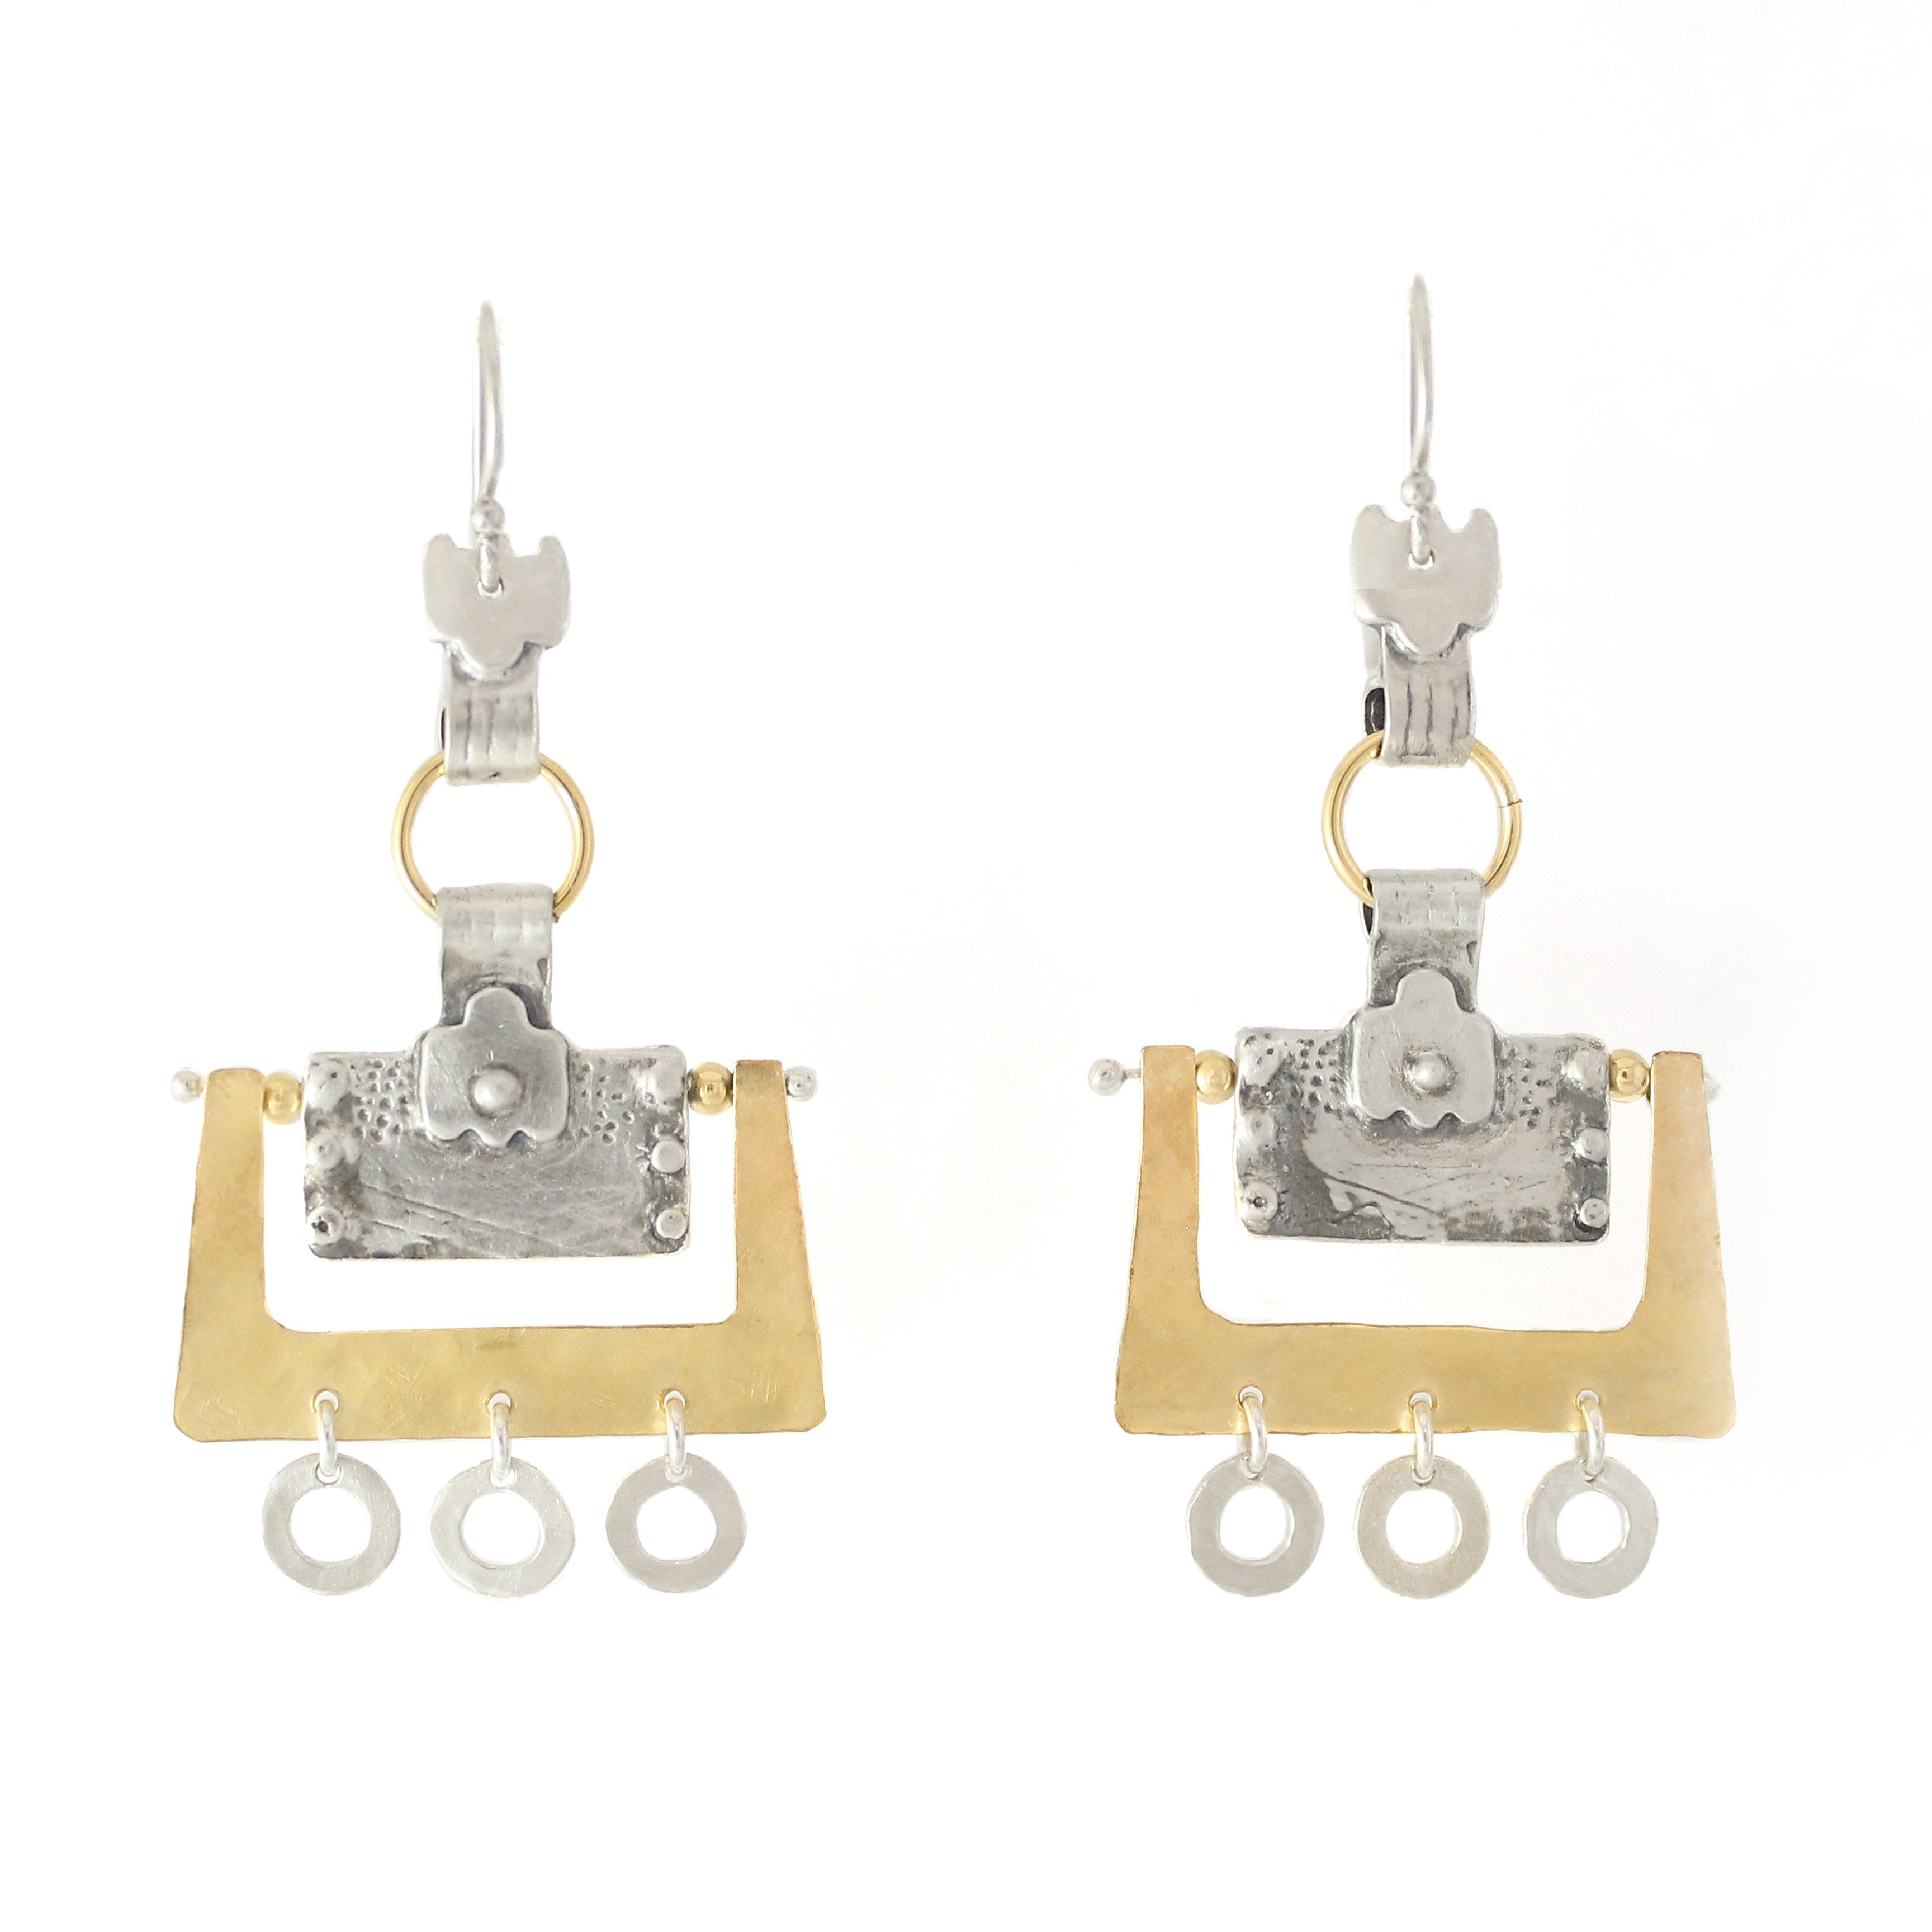 Western Moroccan Style Silver & Goldfield Large Earrings - Shulamit Kanter